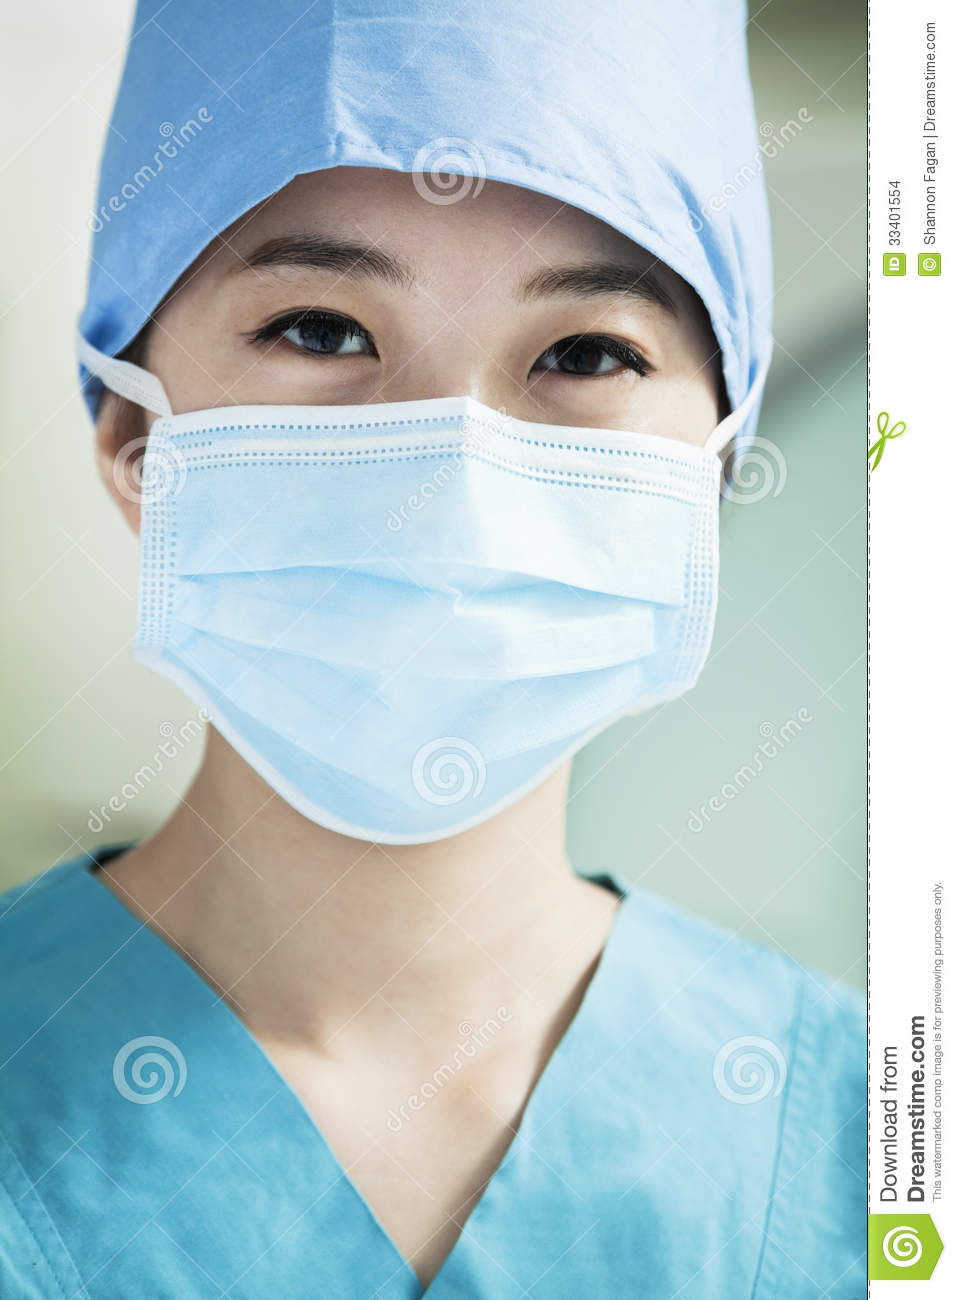 Of Surgeon Mask Portrait The Surgical Wearing Female In Young